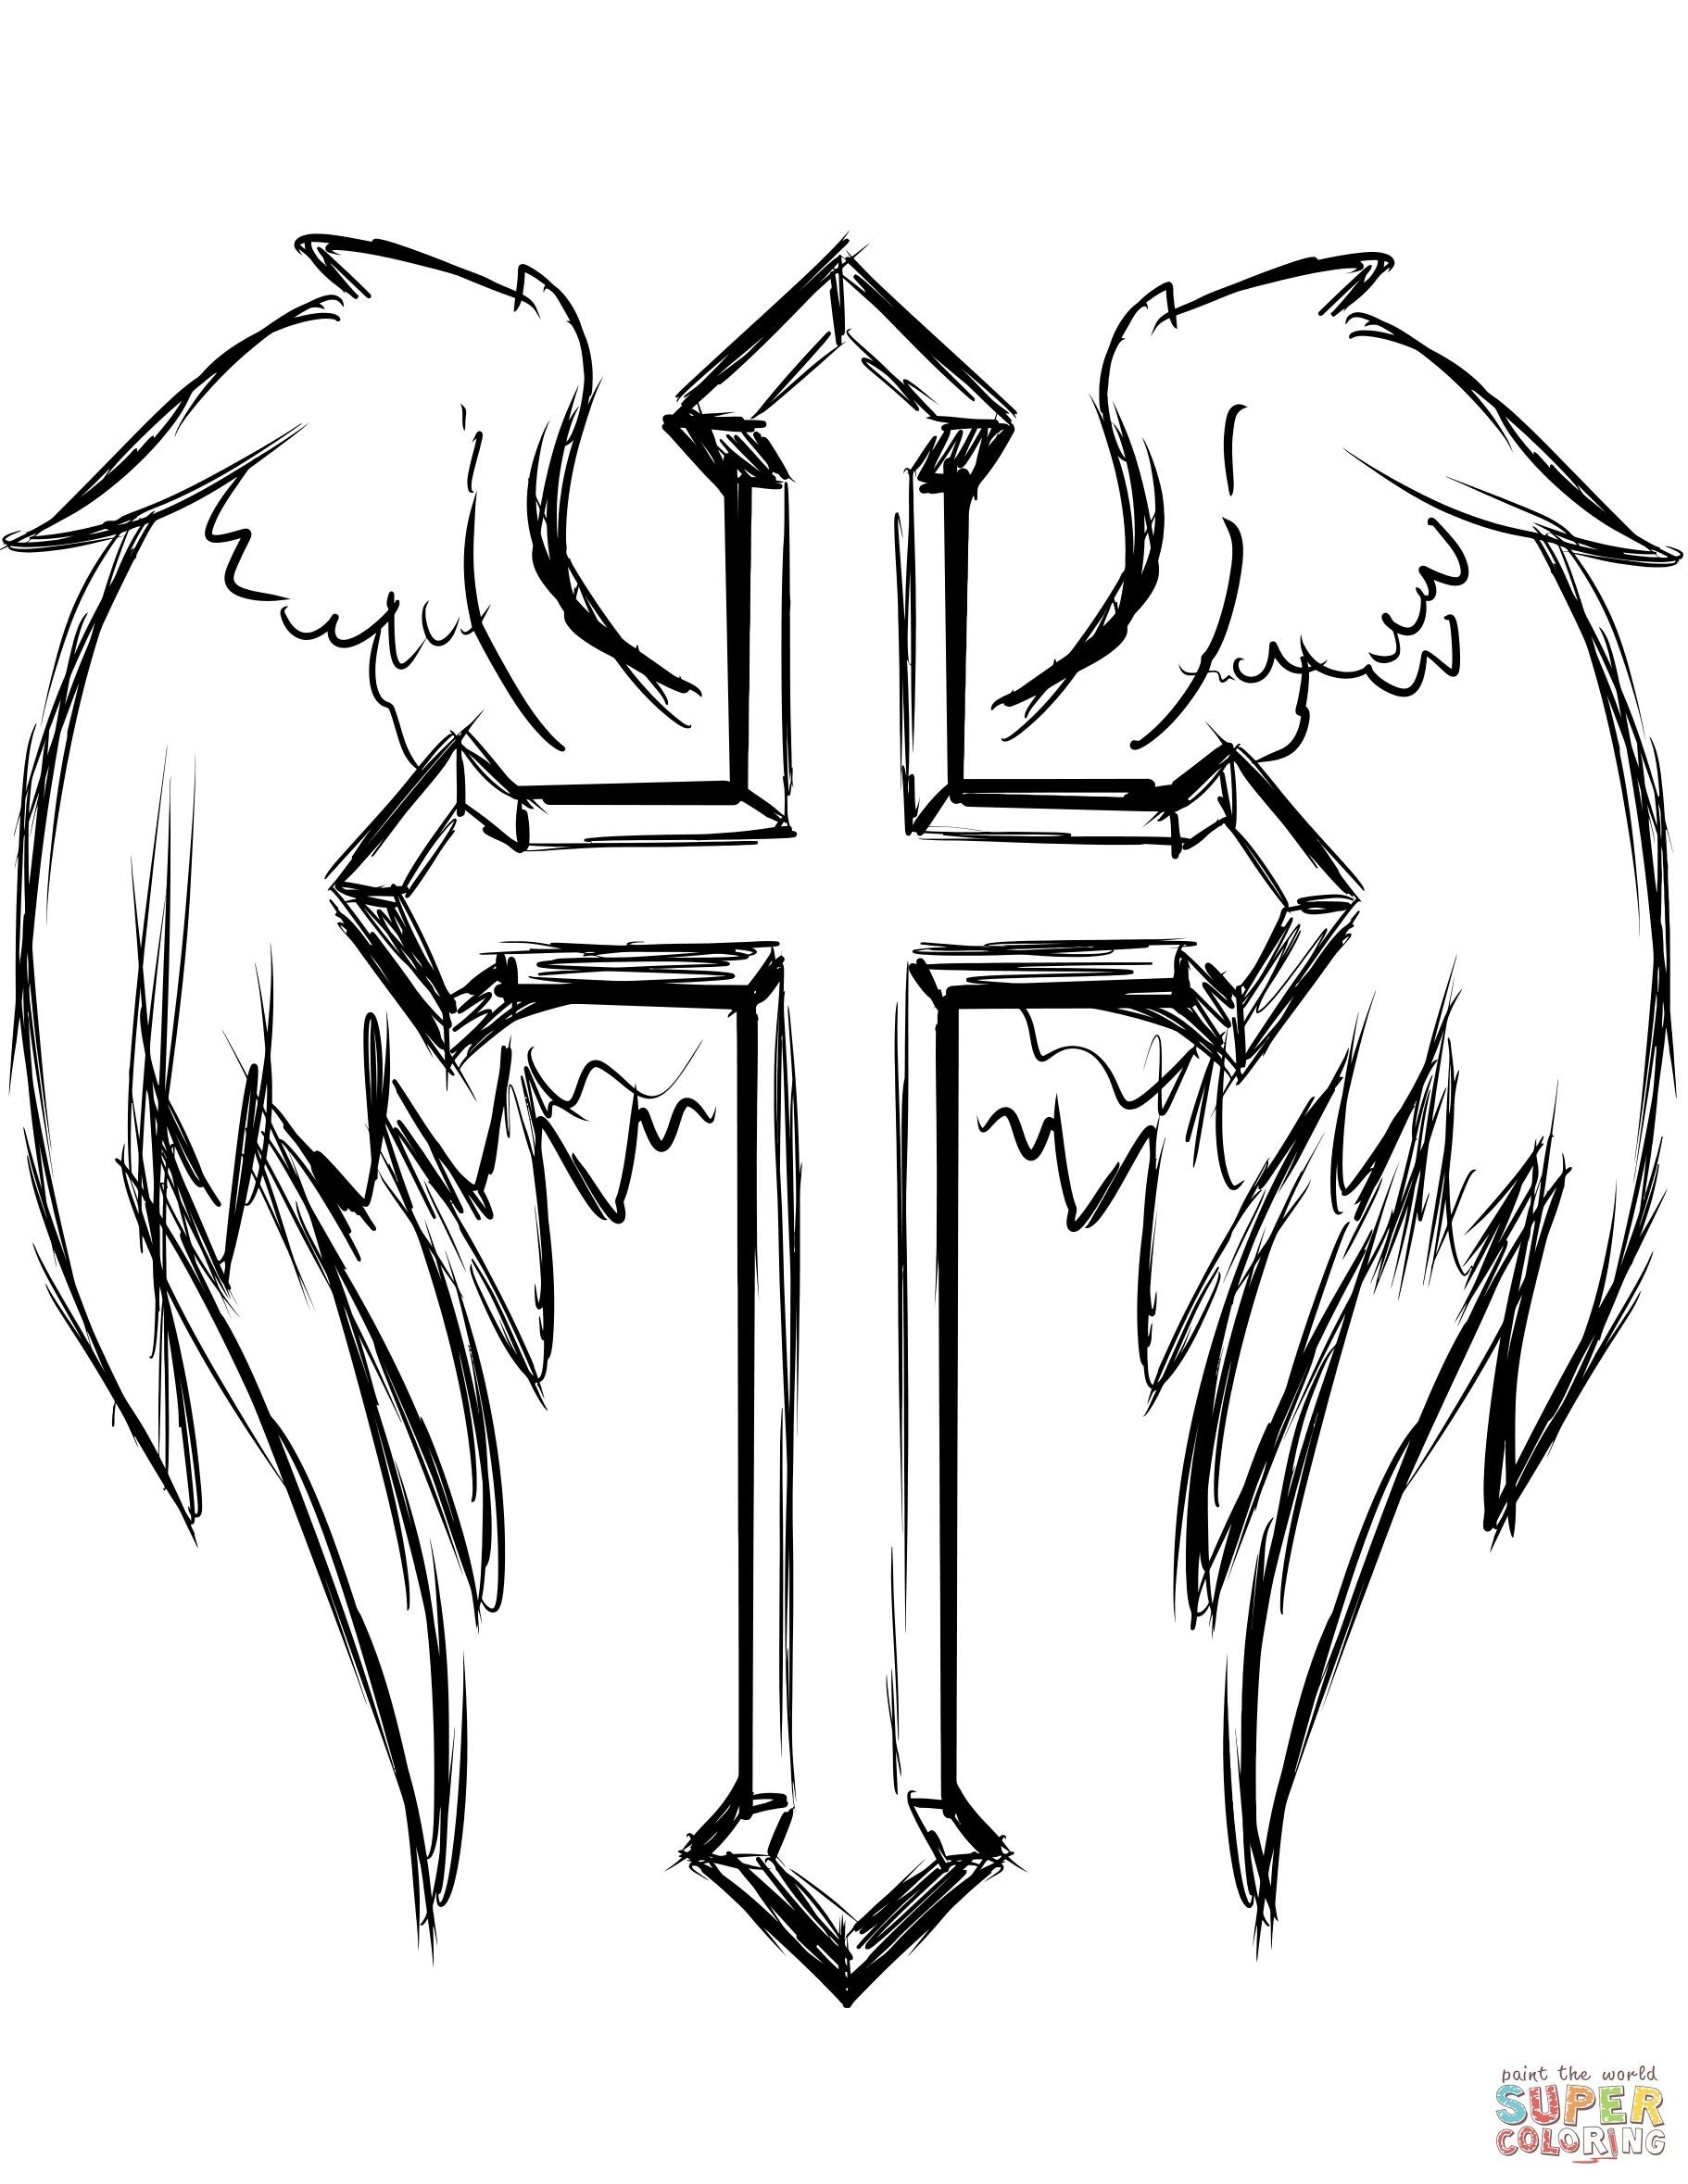 Cross Coloring Pages Fresh Cross With Wings Coloring Page | Coloring - Free Printable Cross Tattoo Designs